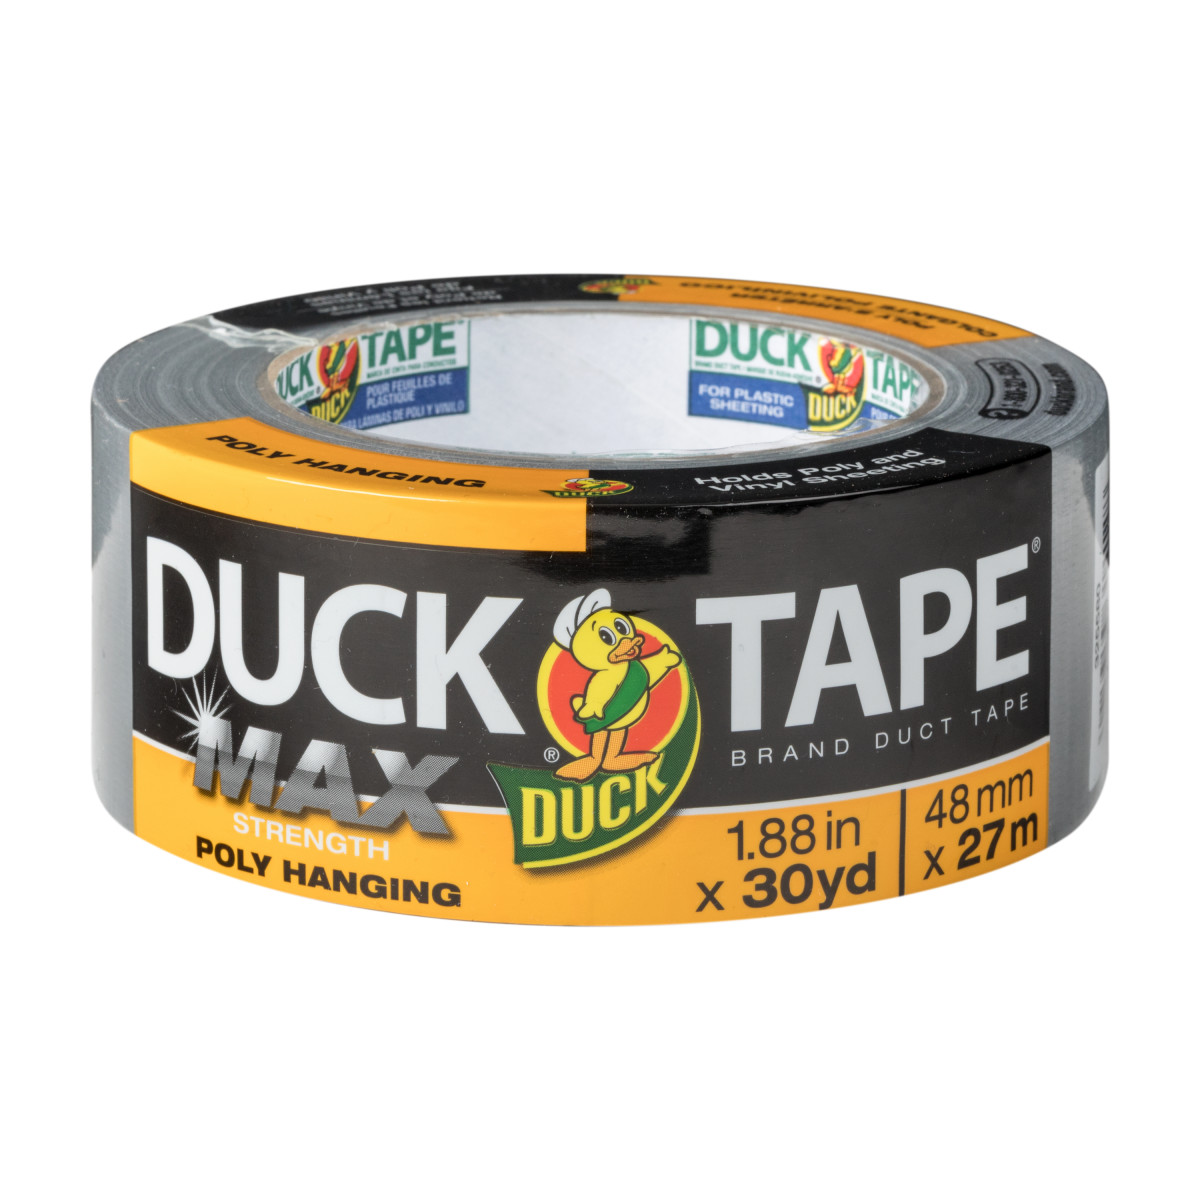 Duck Max Strength Poly Hanging Duct Tape, Silver, 1.88 in. x 30 yd.